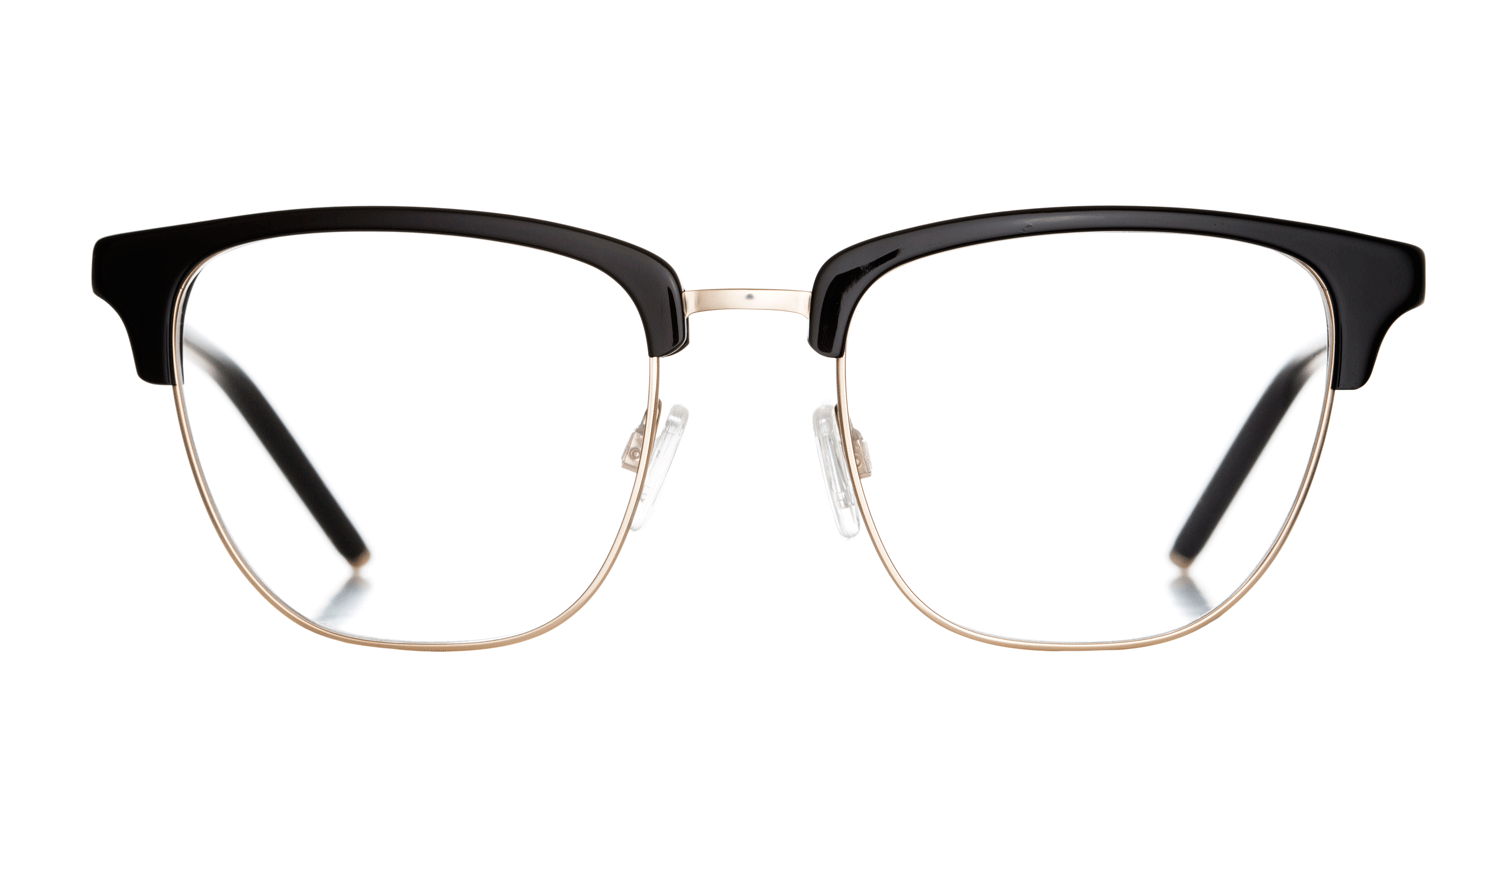 Jack Optical - Black and Gold